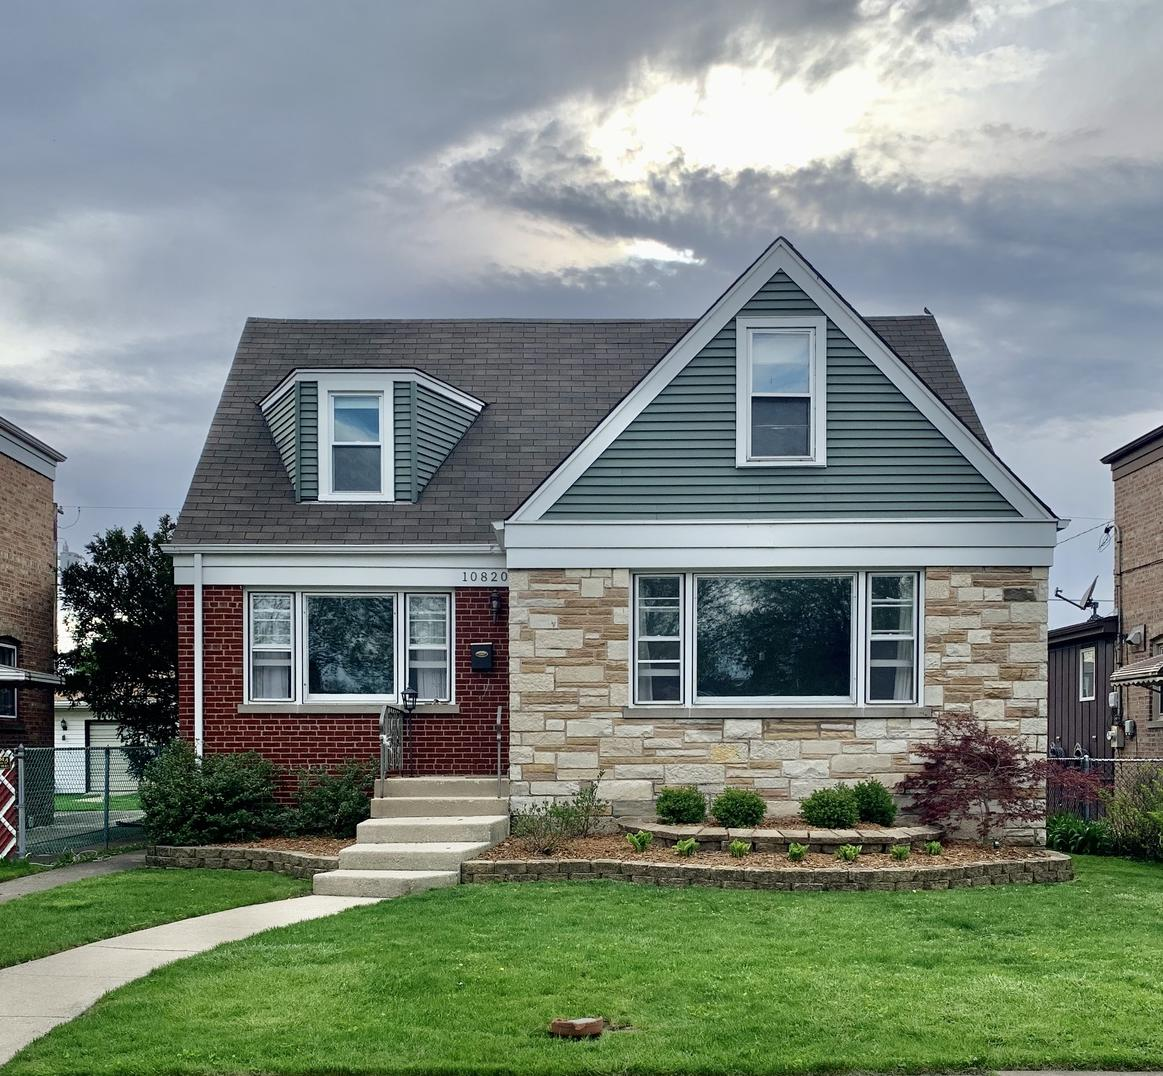 Photo of 10820 LAWNDALE Chicago IL 60655